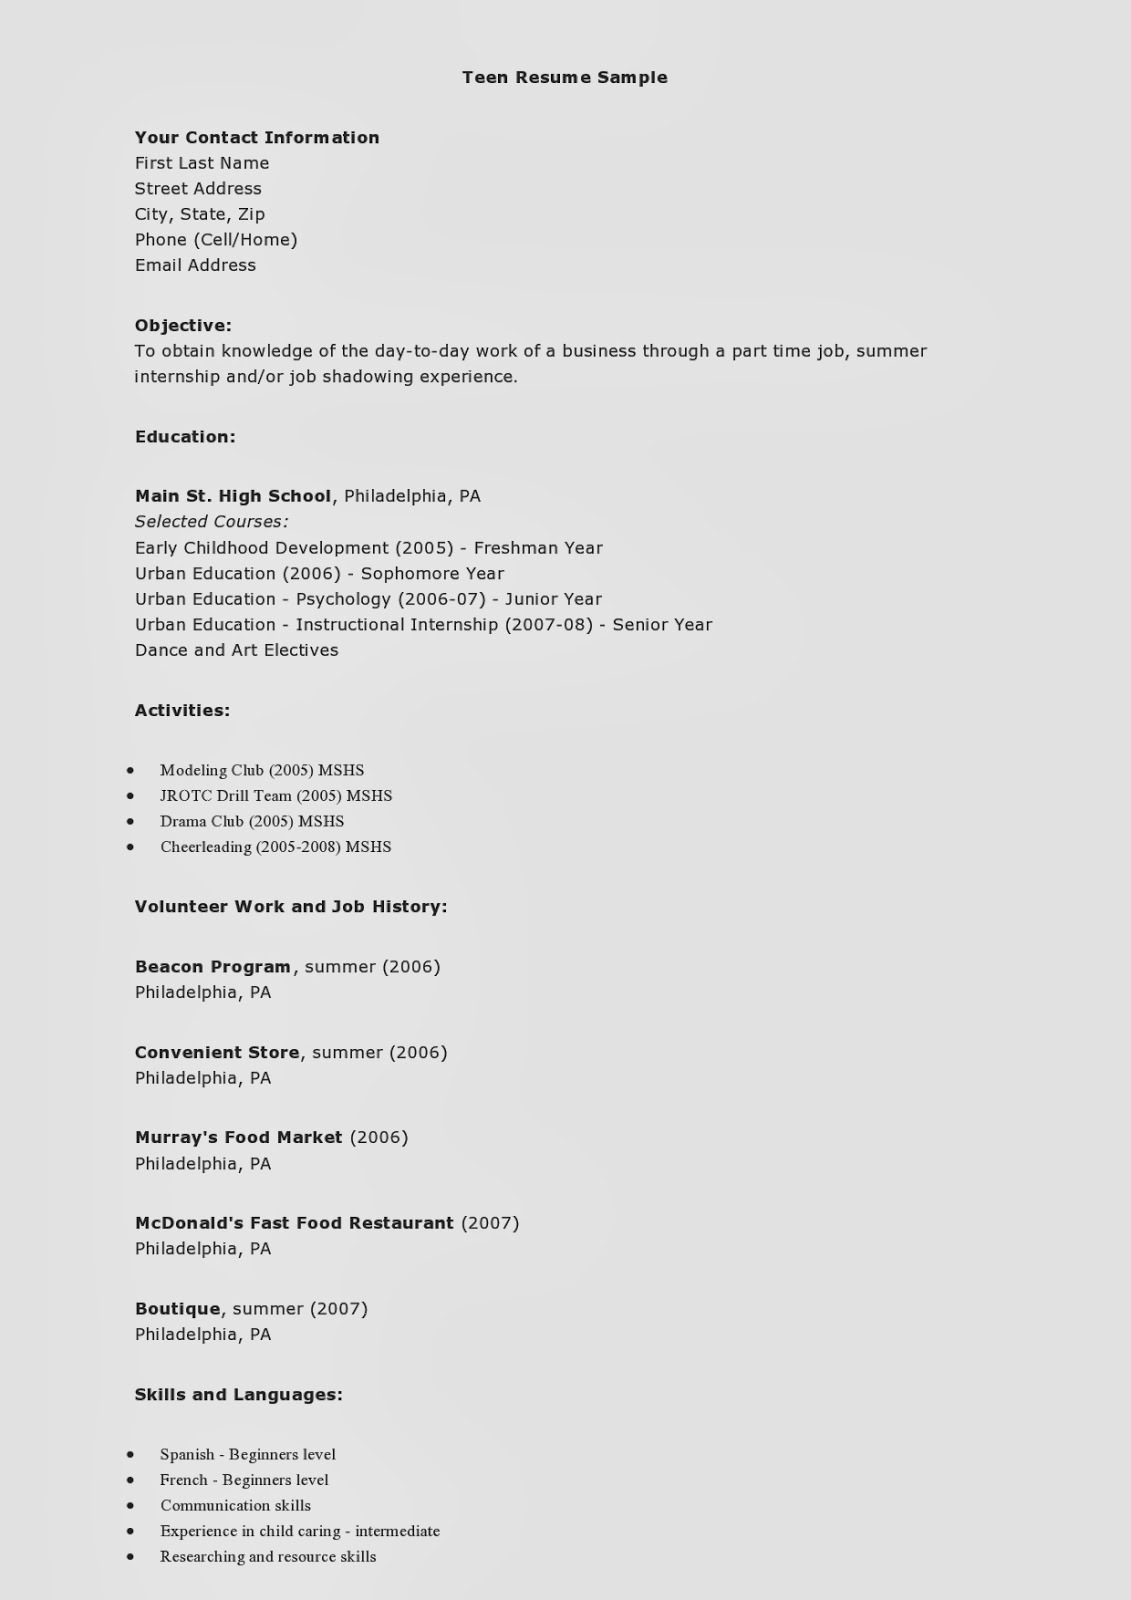 Resume For A High School Student